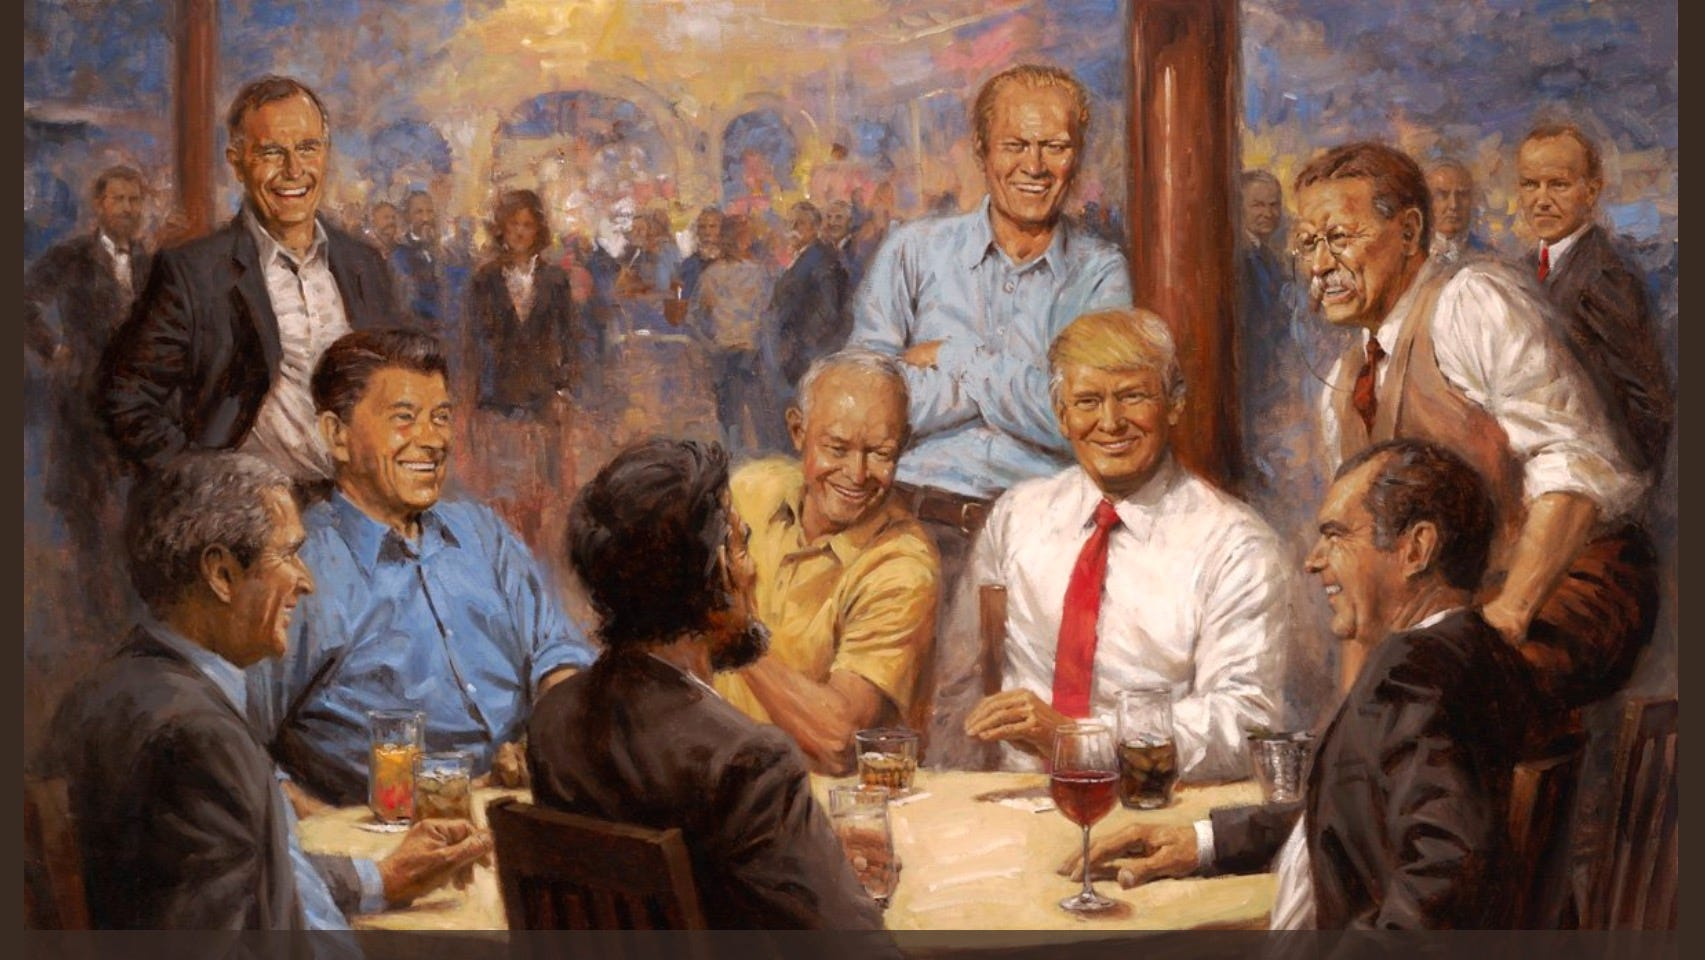 This painting by Andy Thomas of President Donald Trump drinking with past Republican presidents hangs in the White House.